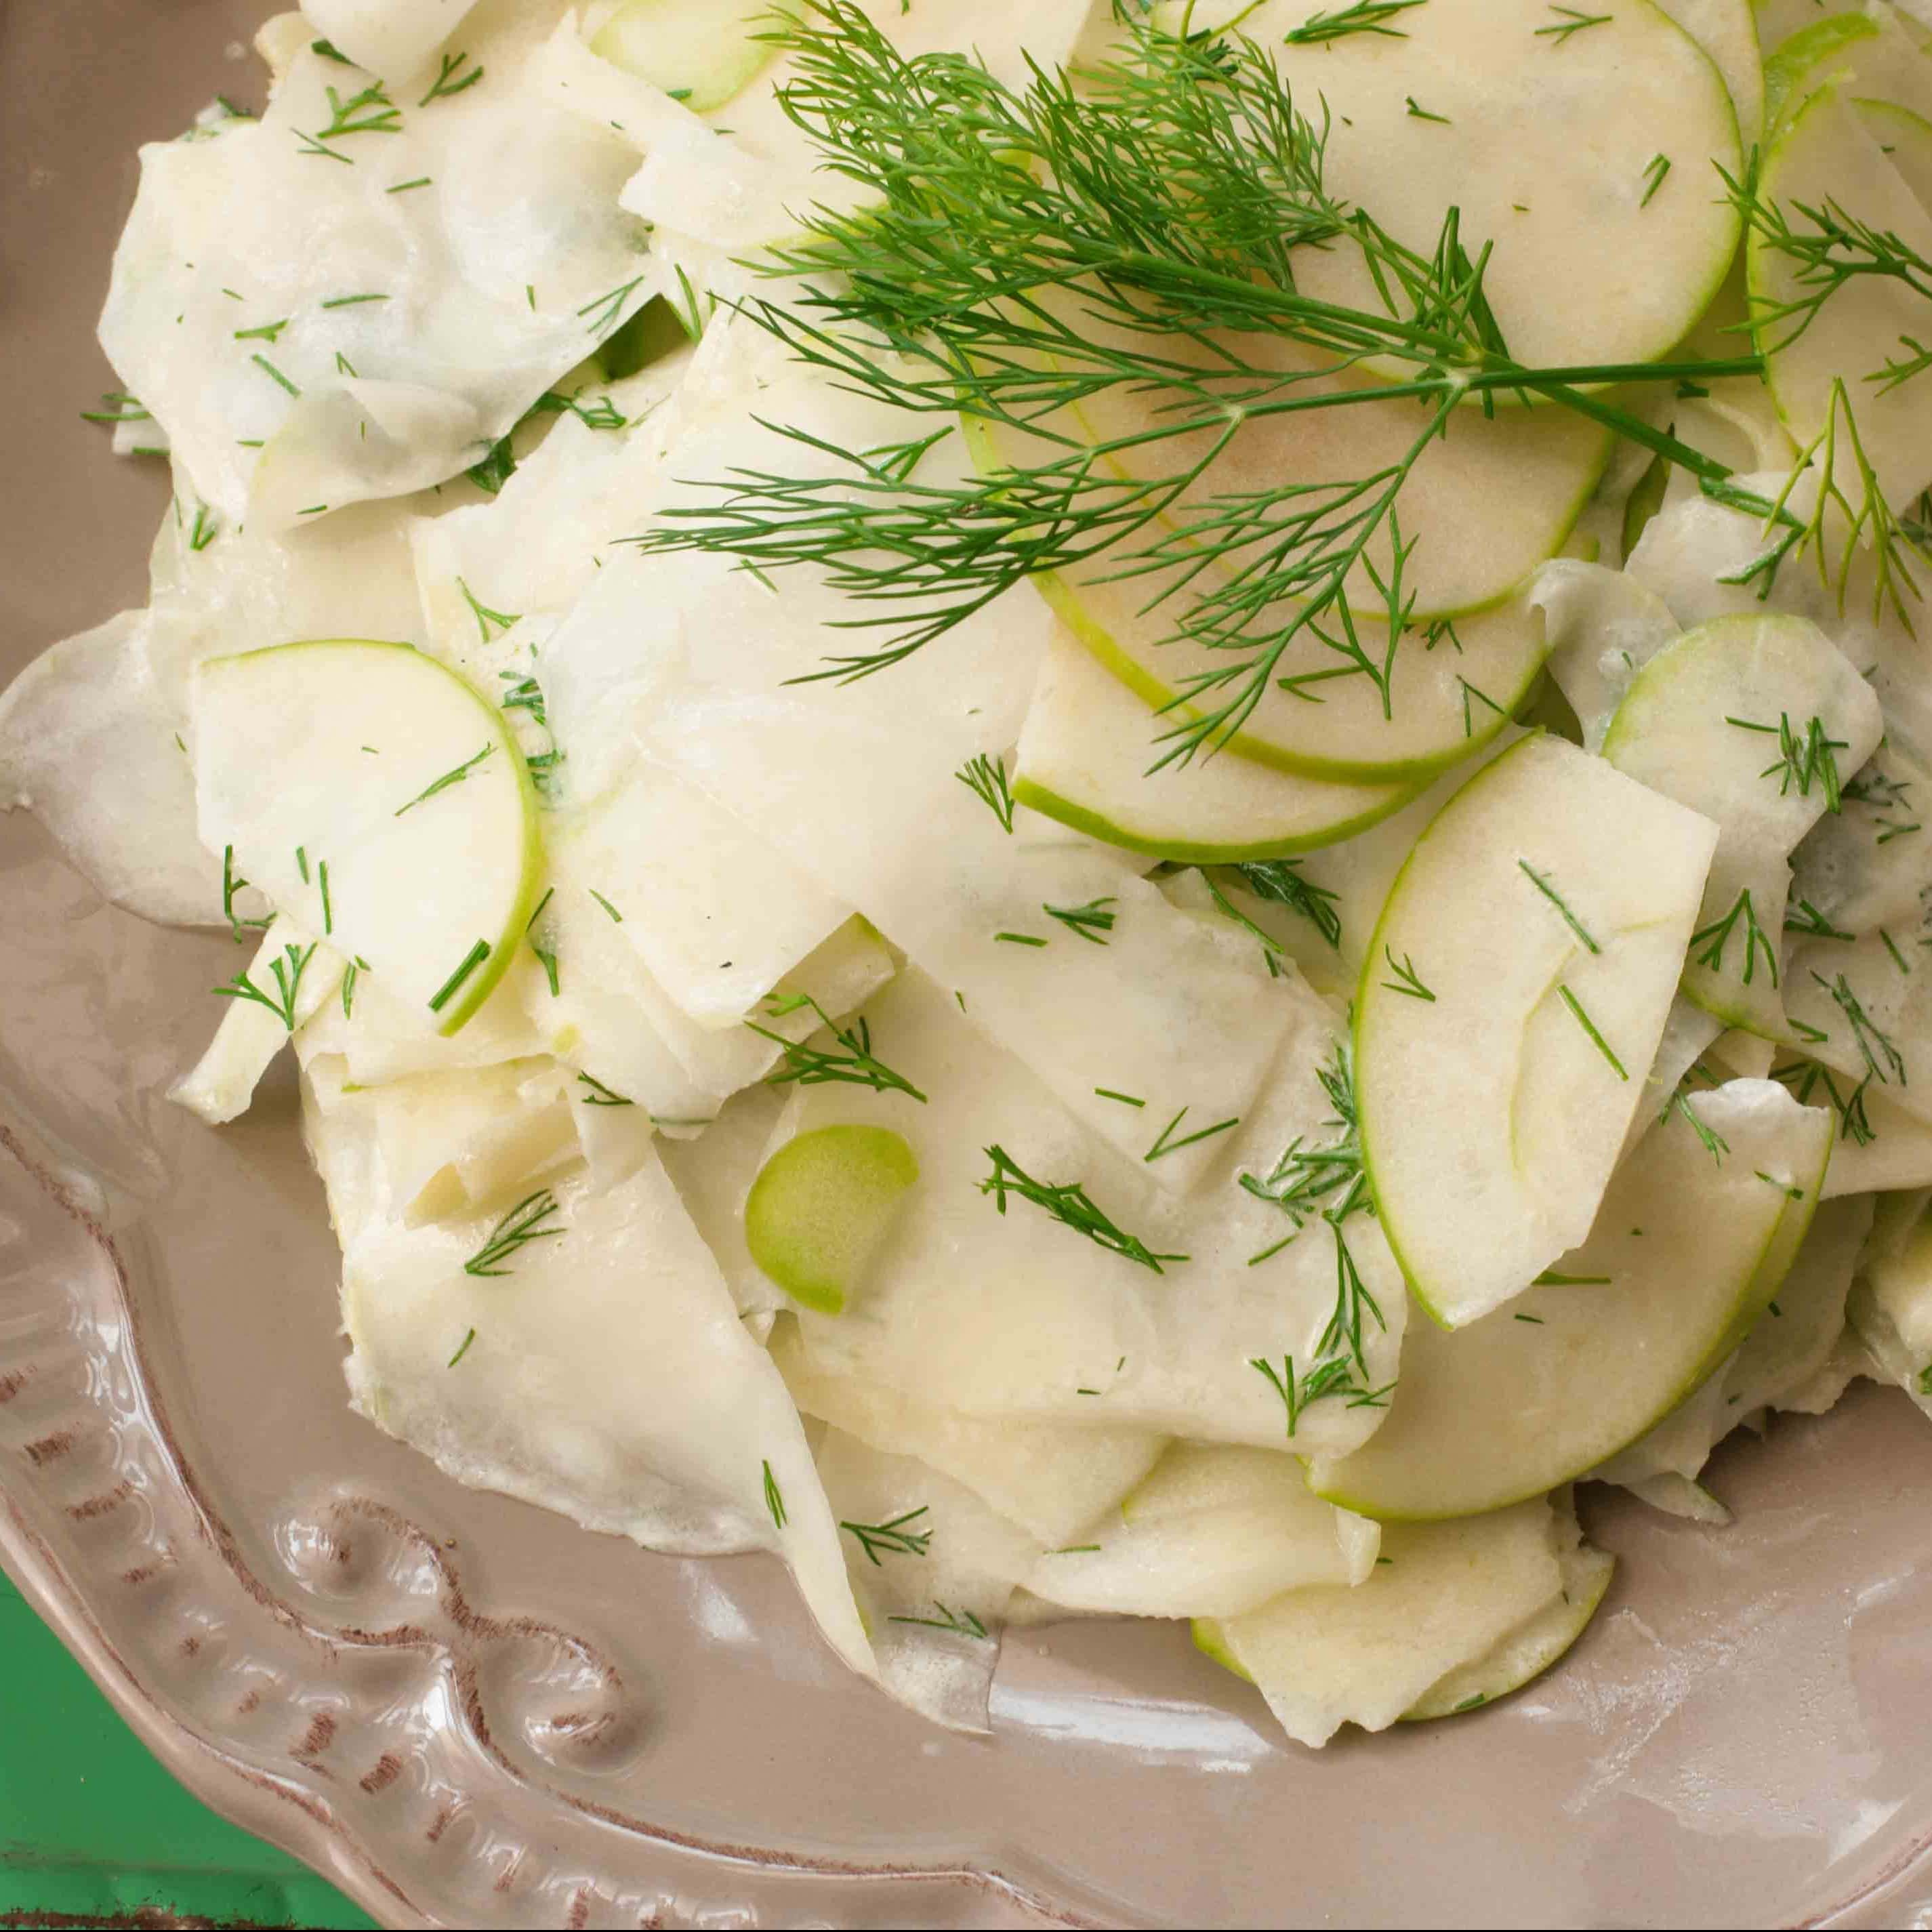 Kolrabhi and Apple Salad with yogurt fennel dressing